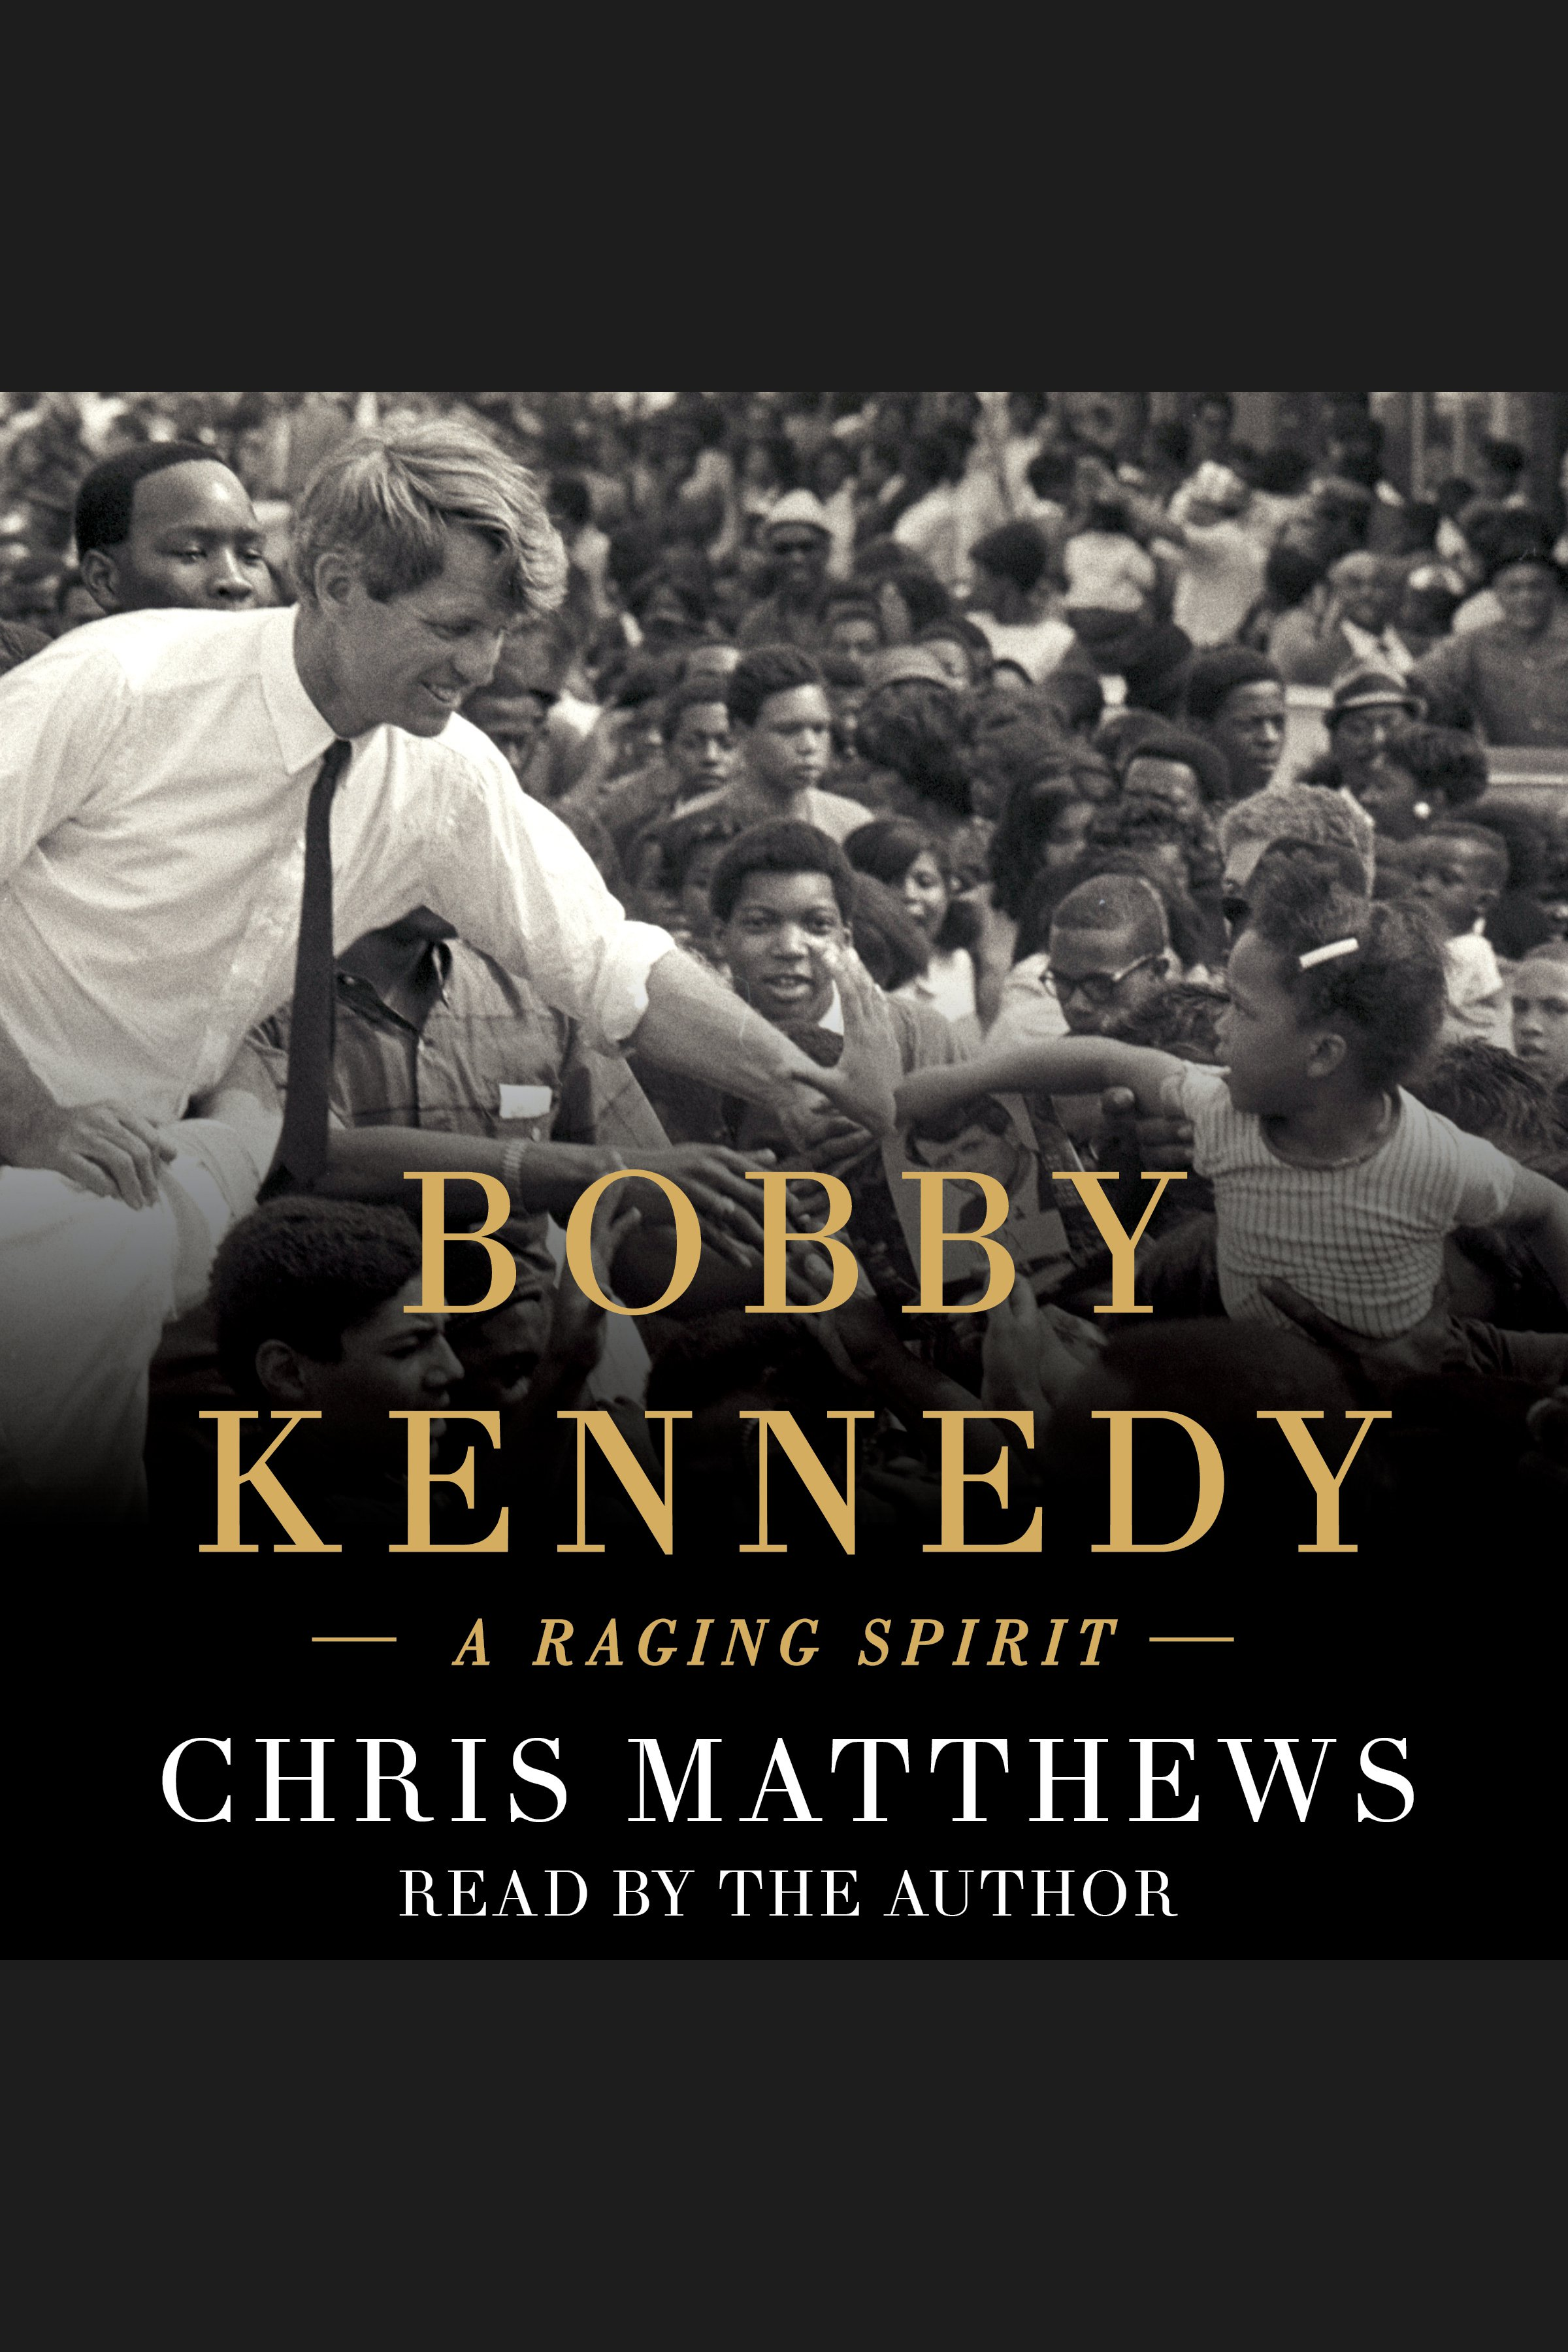 Bobby Kennedy [EAUDIOBOOK] A Raging Spirit